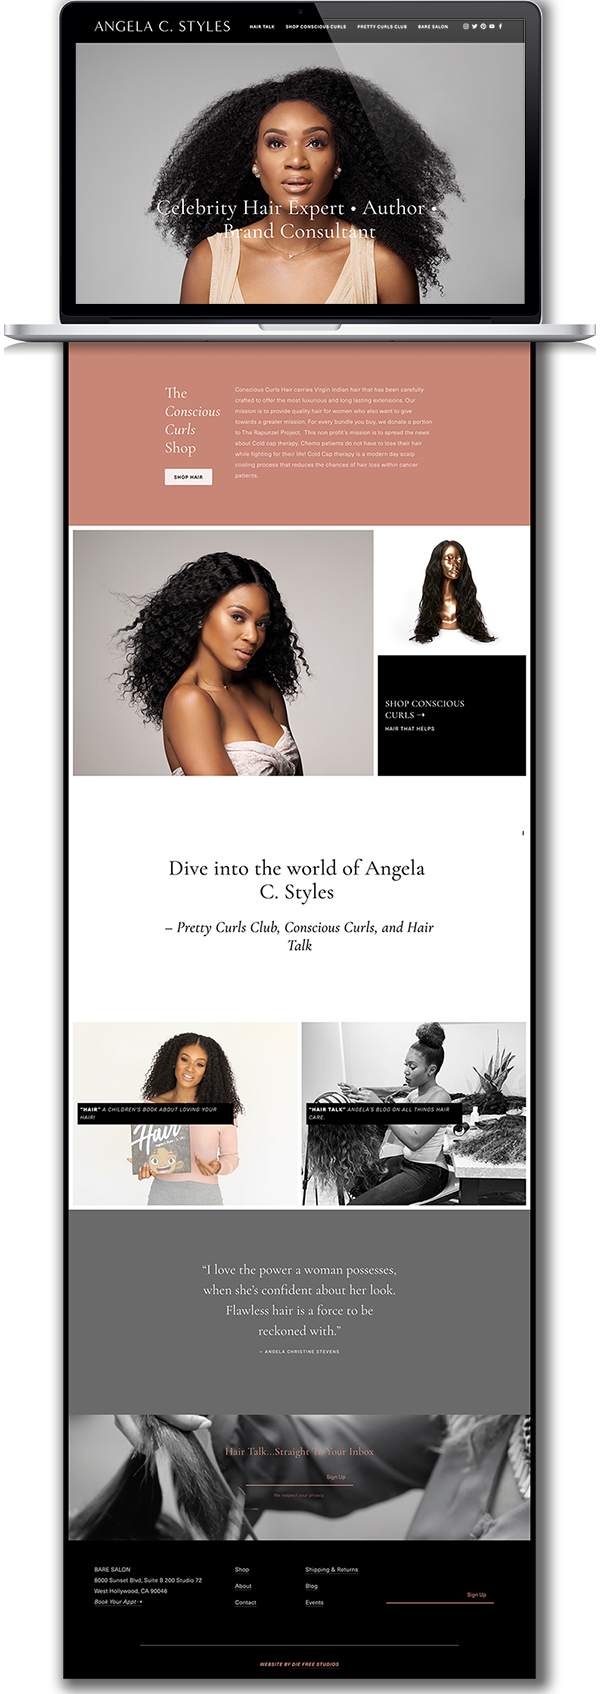 angela-c-styles-celebrity-hair-expert-stylist.png